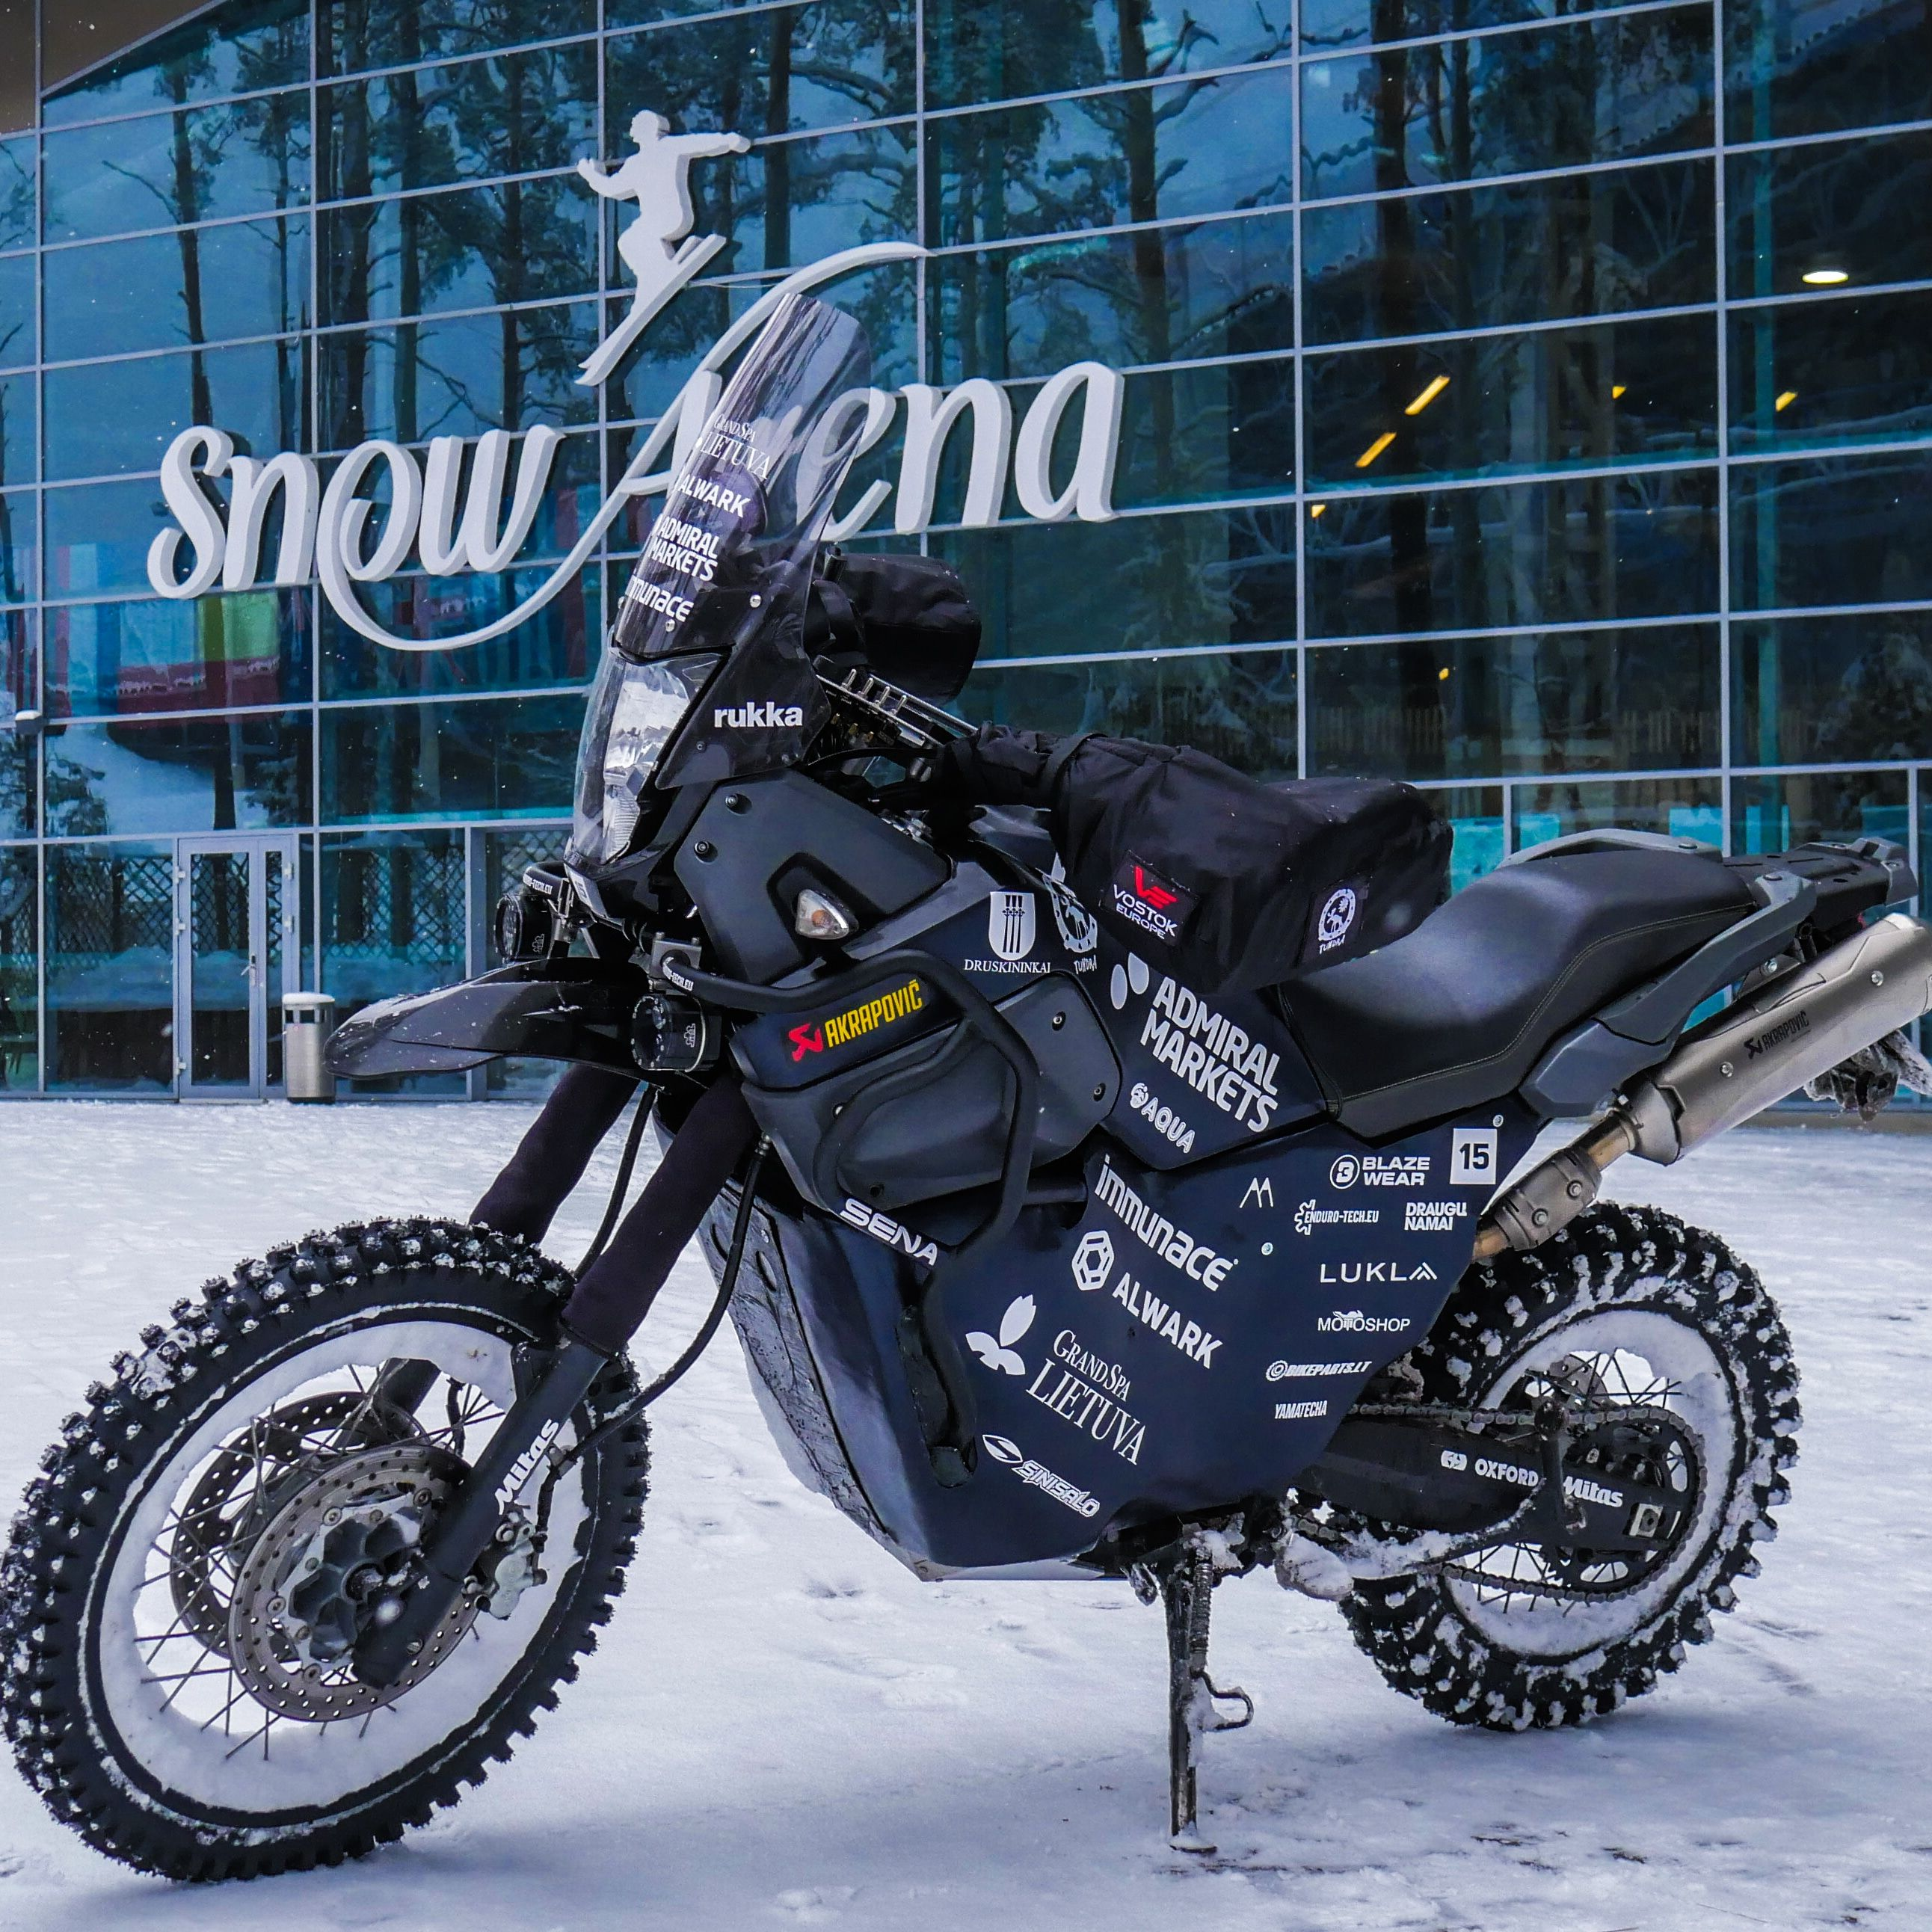 This Man Is Riding a Motorcycle Across Siberia to the Coldest